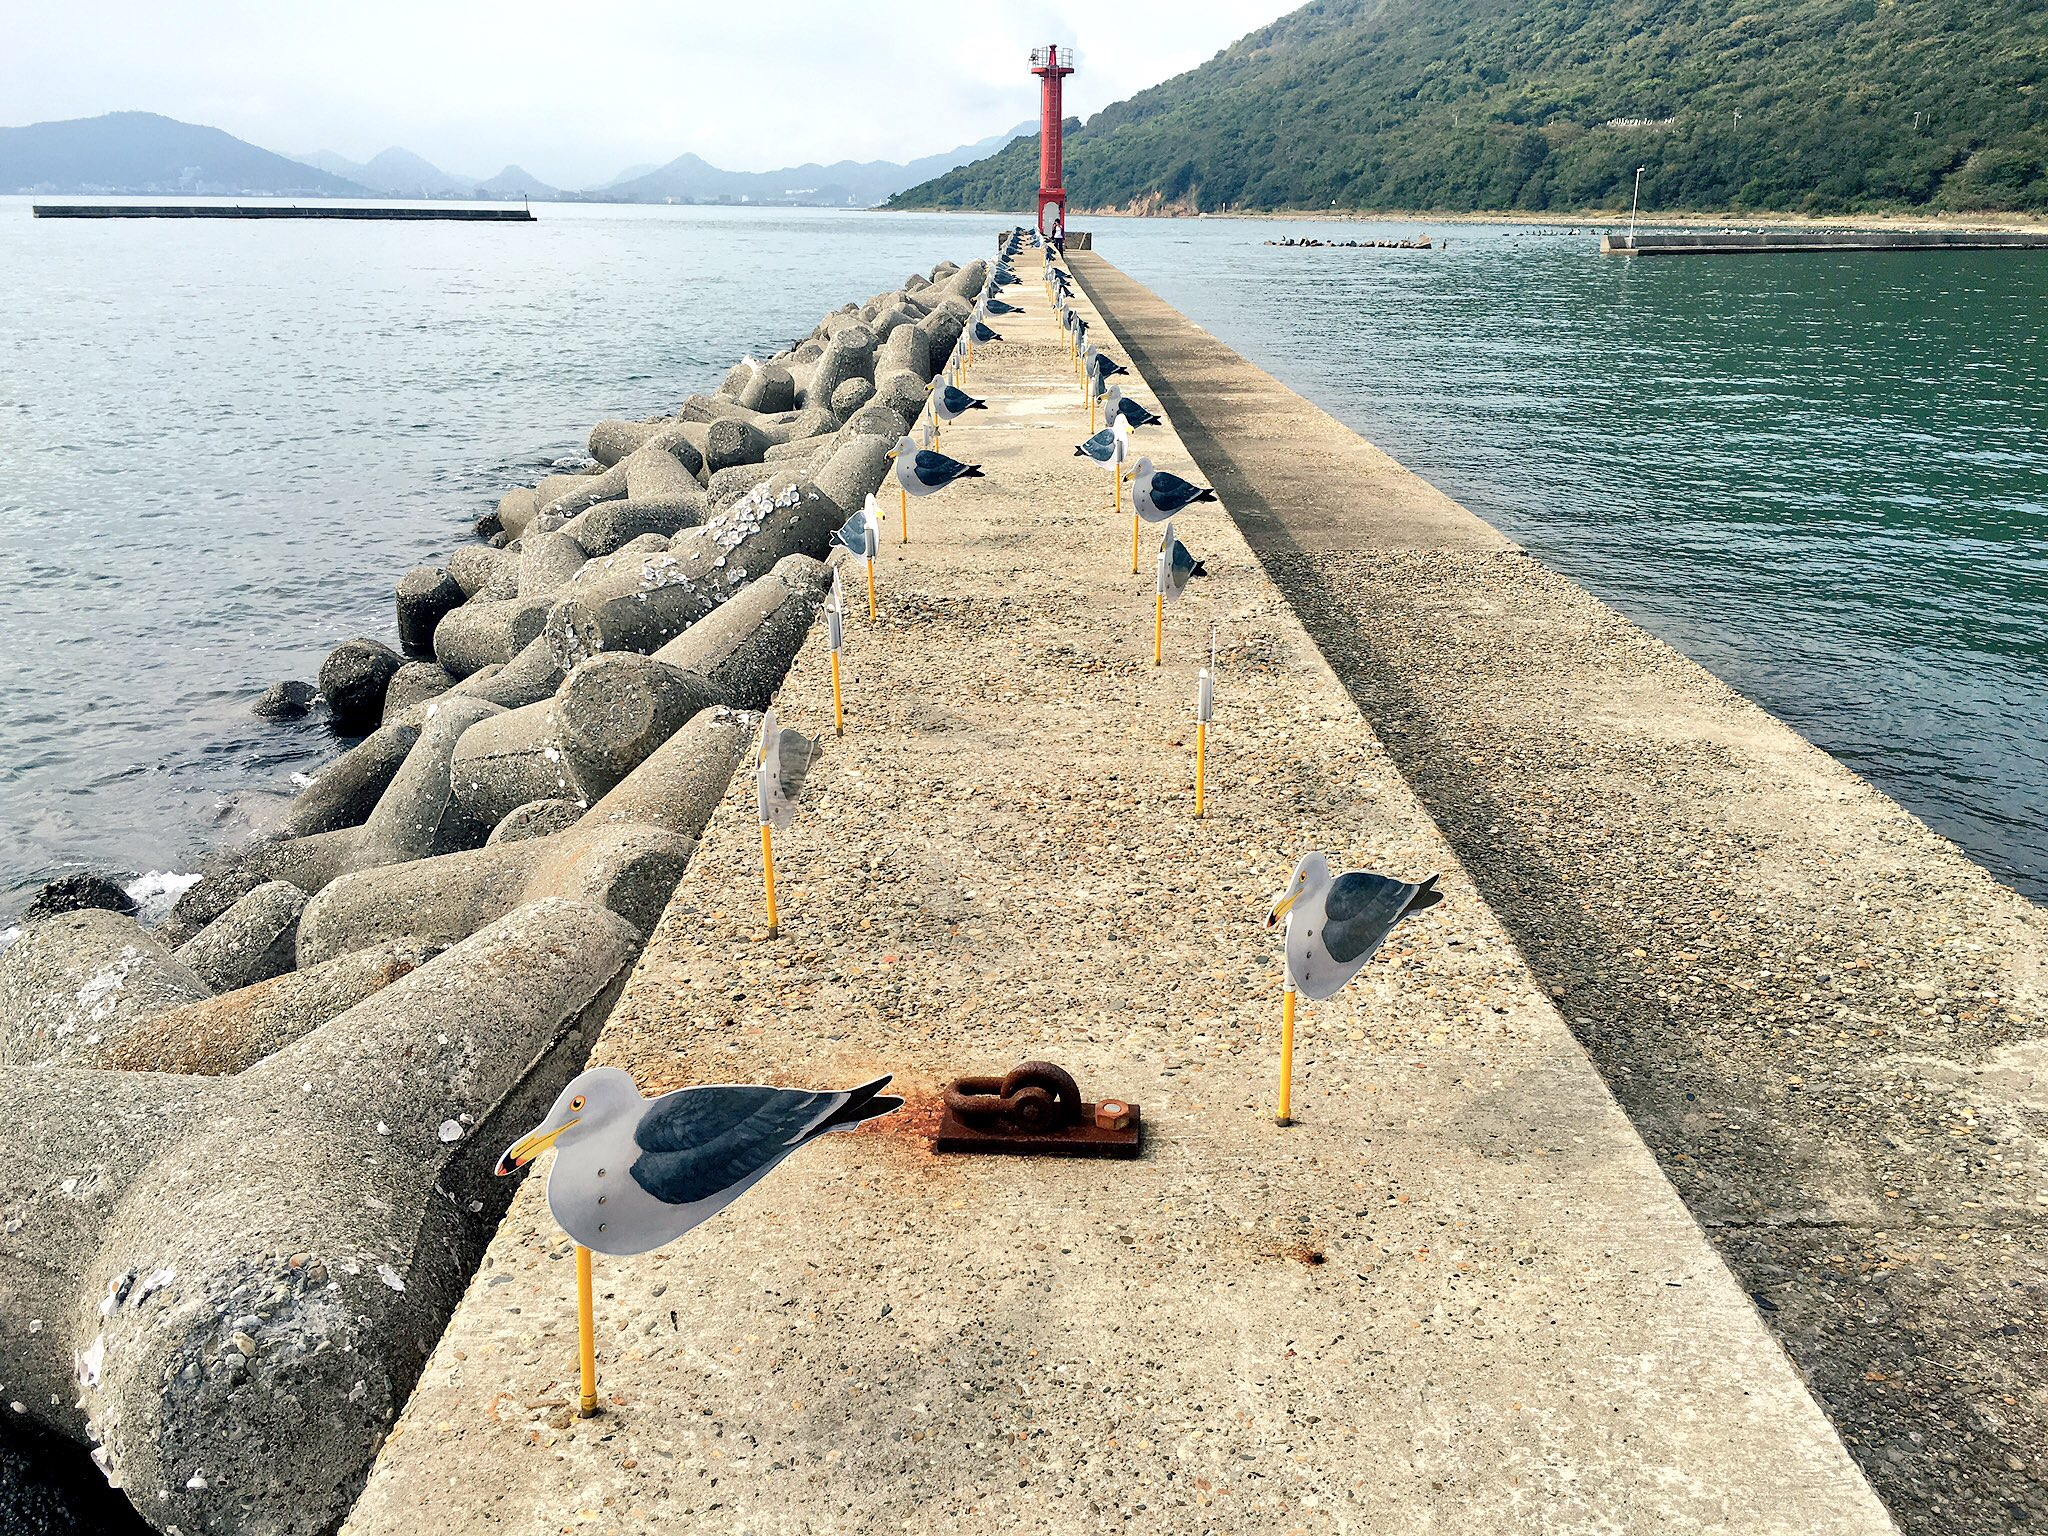 Covering Coasts With Concrete Japan Looks To Tetrapods To Battle